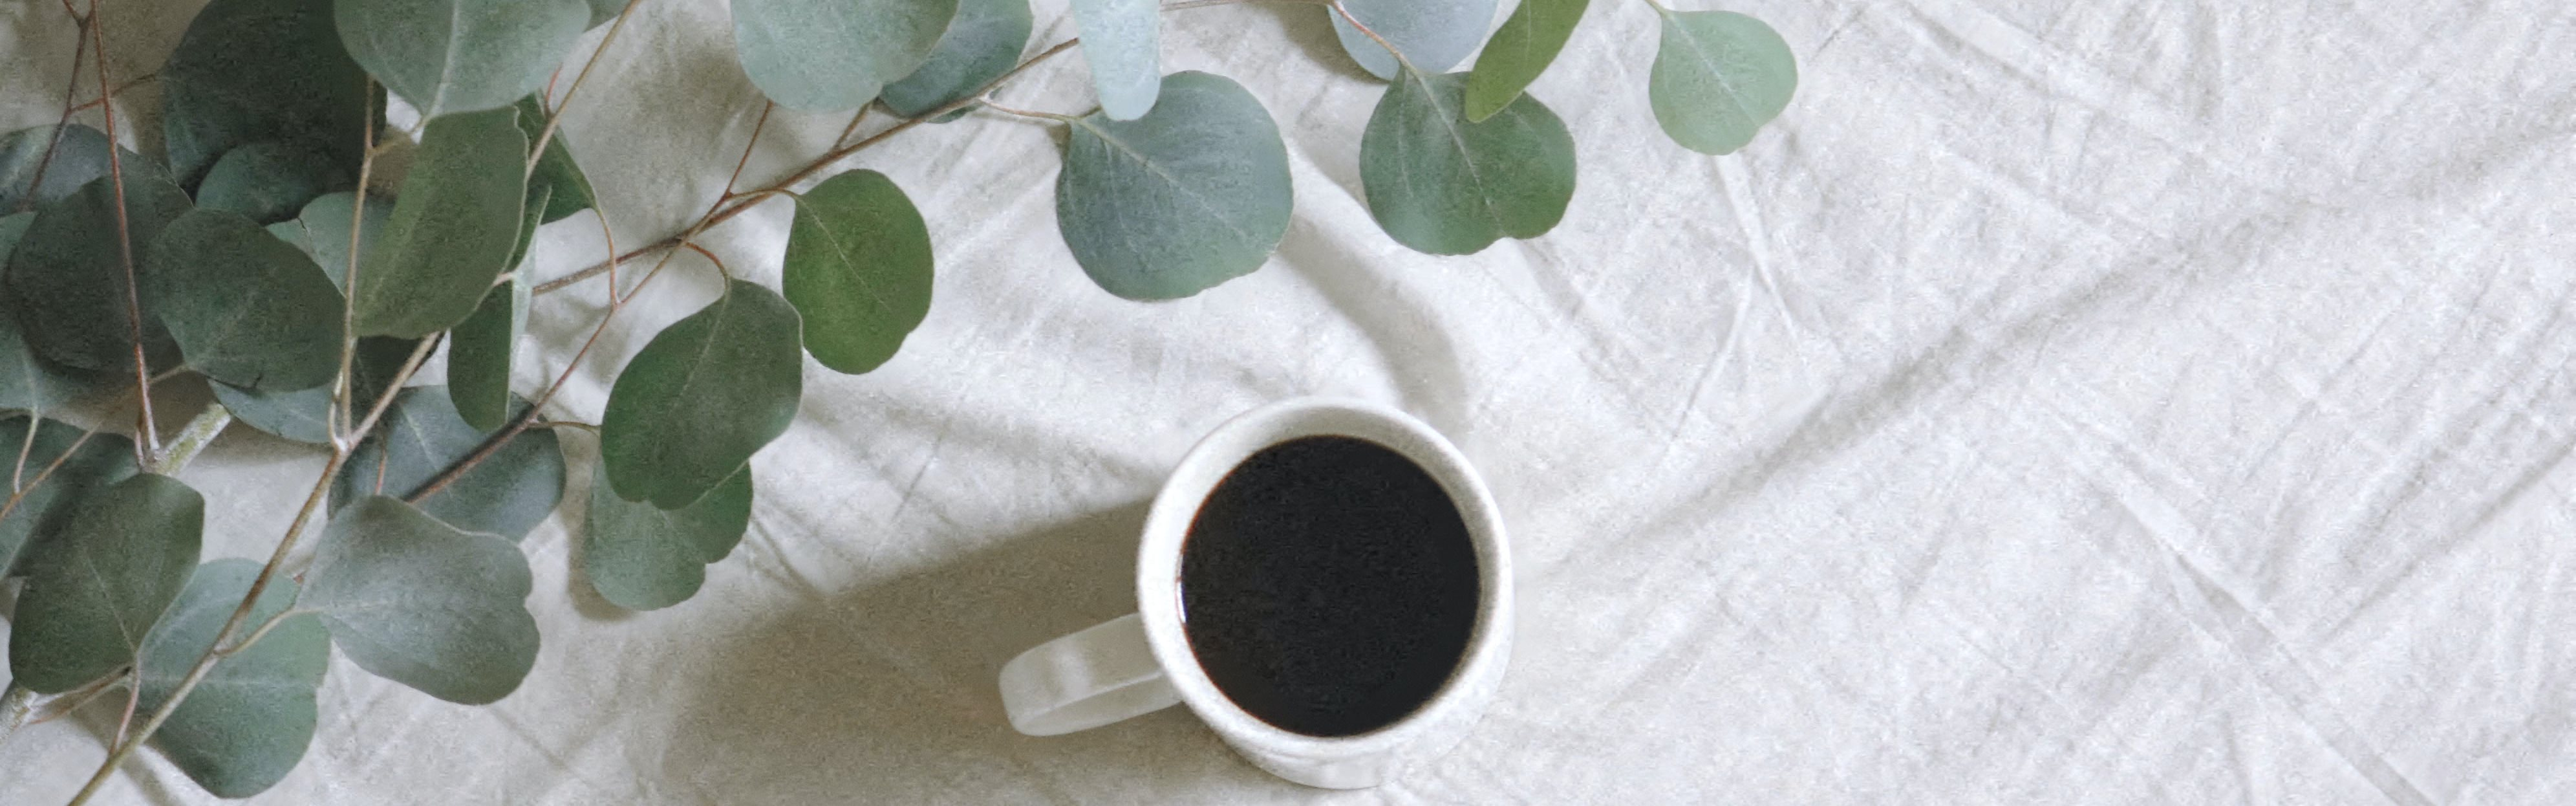 Stock Image of Coffee Cup on White Cloth Next to Leafy Branches